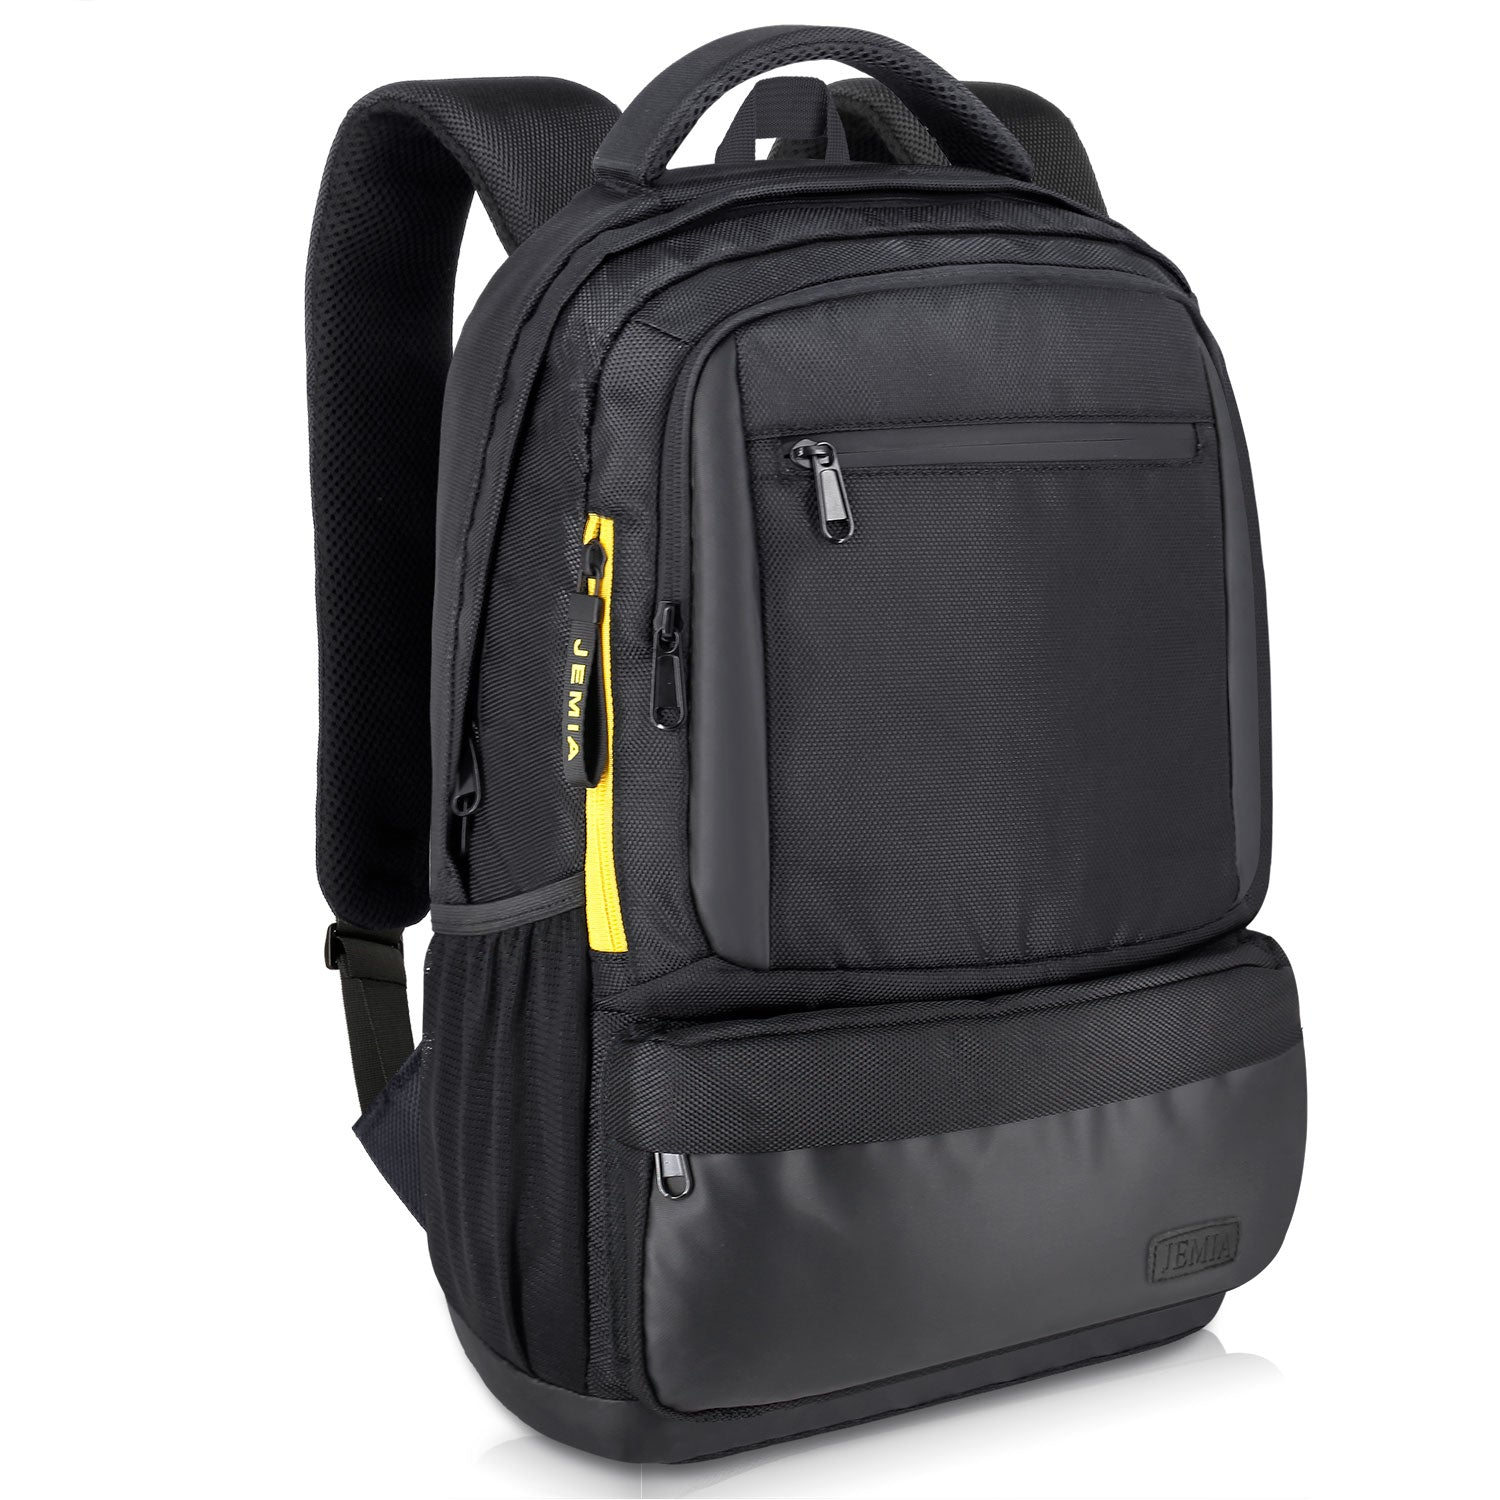 Multi Compartments Backpack for Multipurpose Travel - JEMIA Industrial Co. Ltd